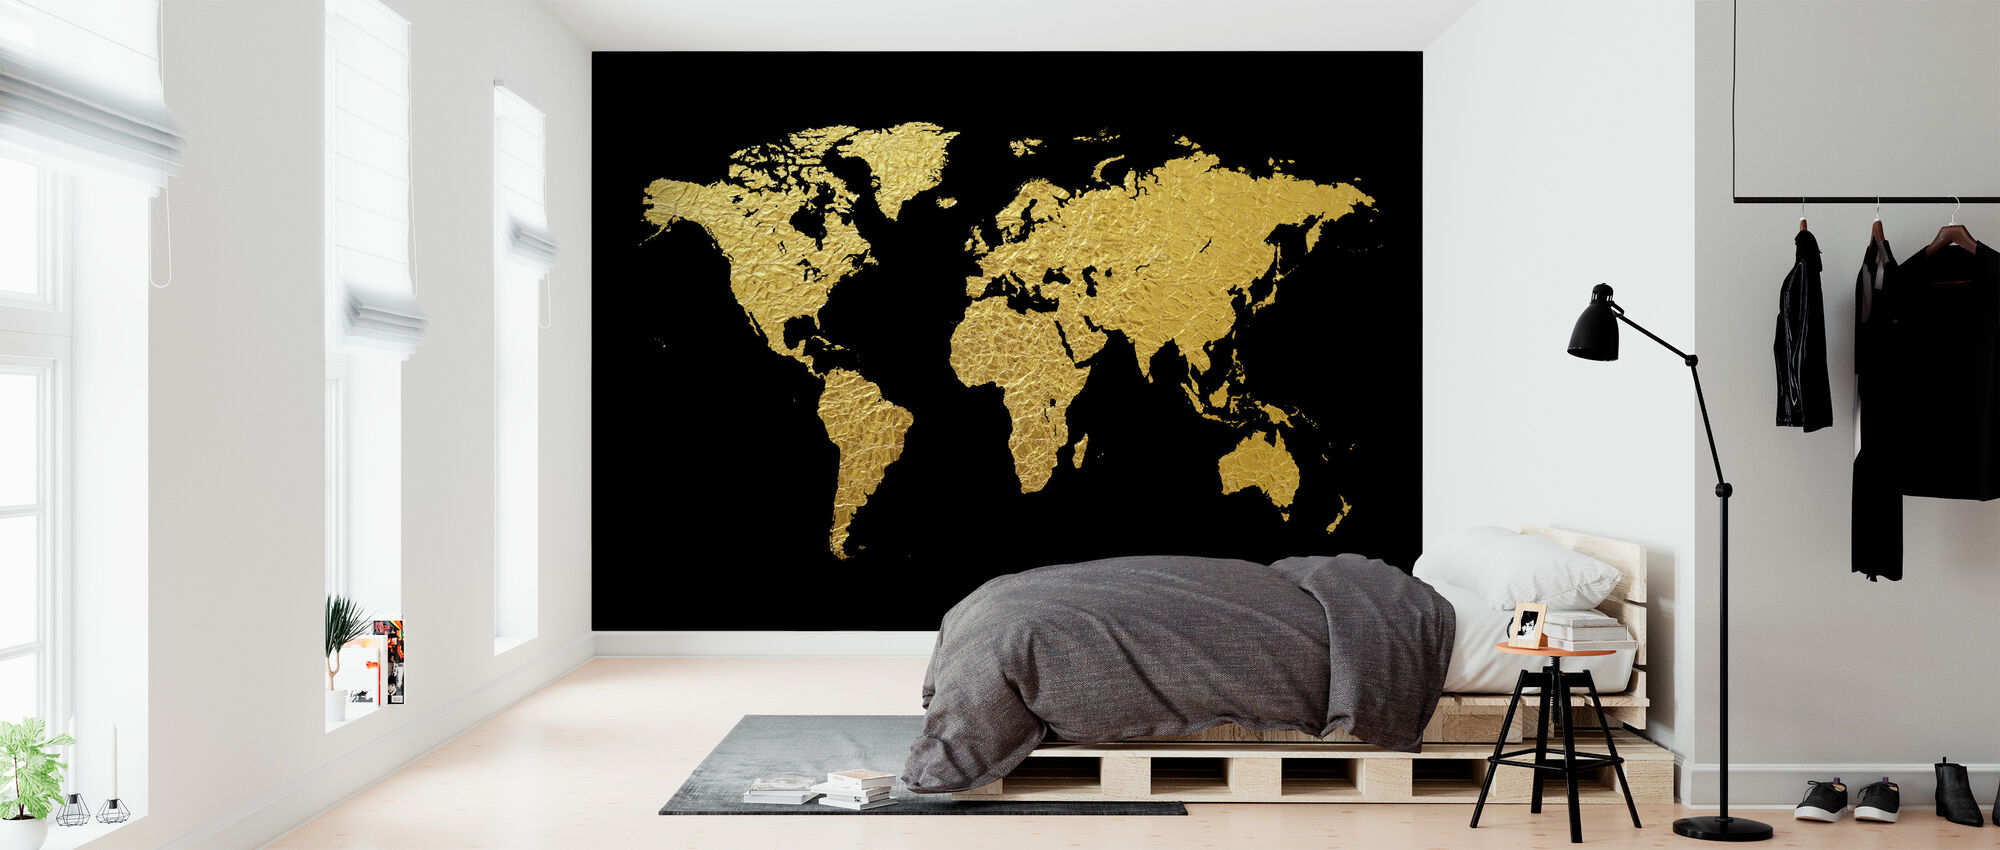 Gold World Map with Black Background - Wallpaper - Bedroom